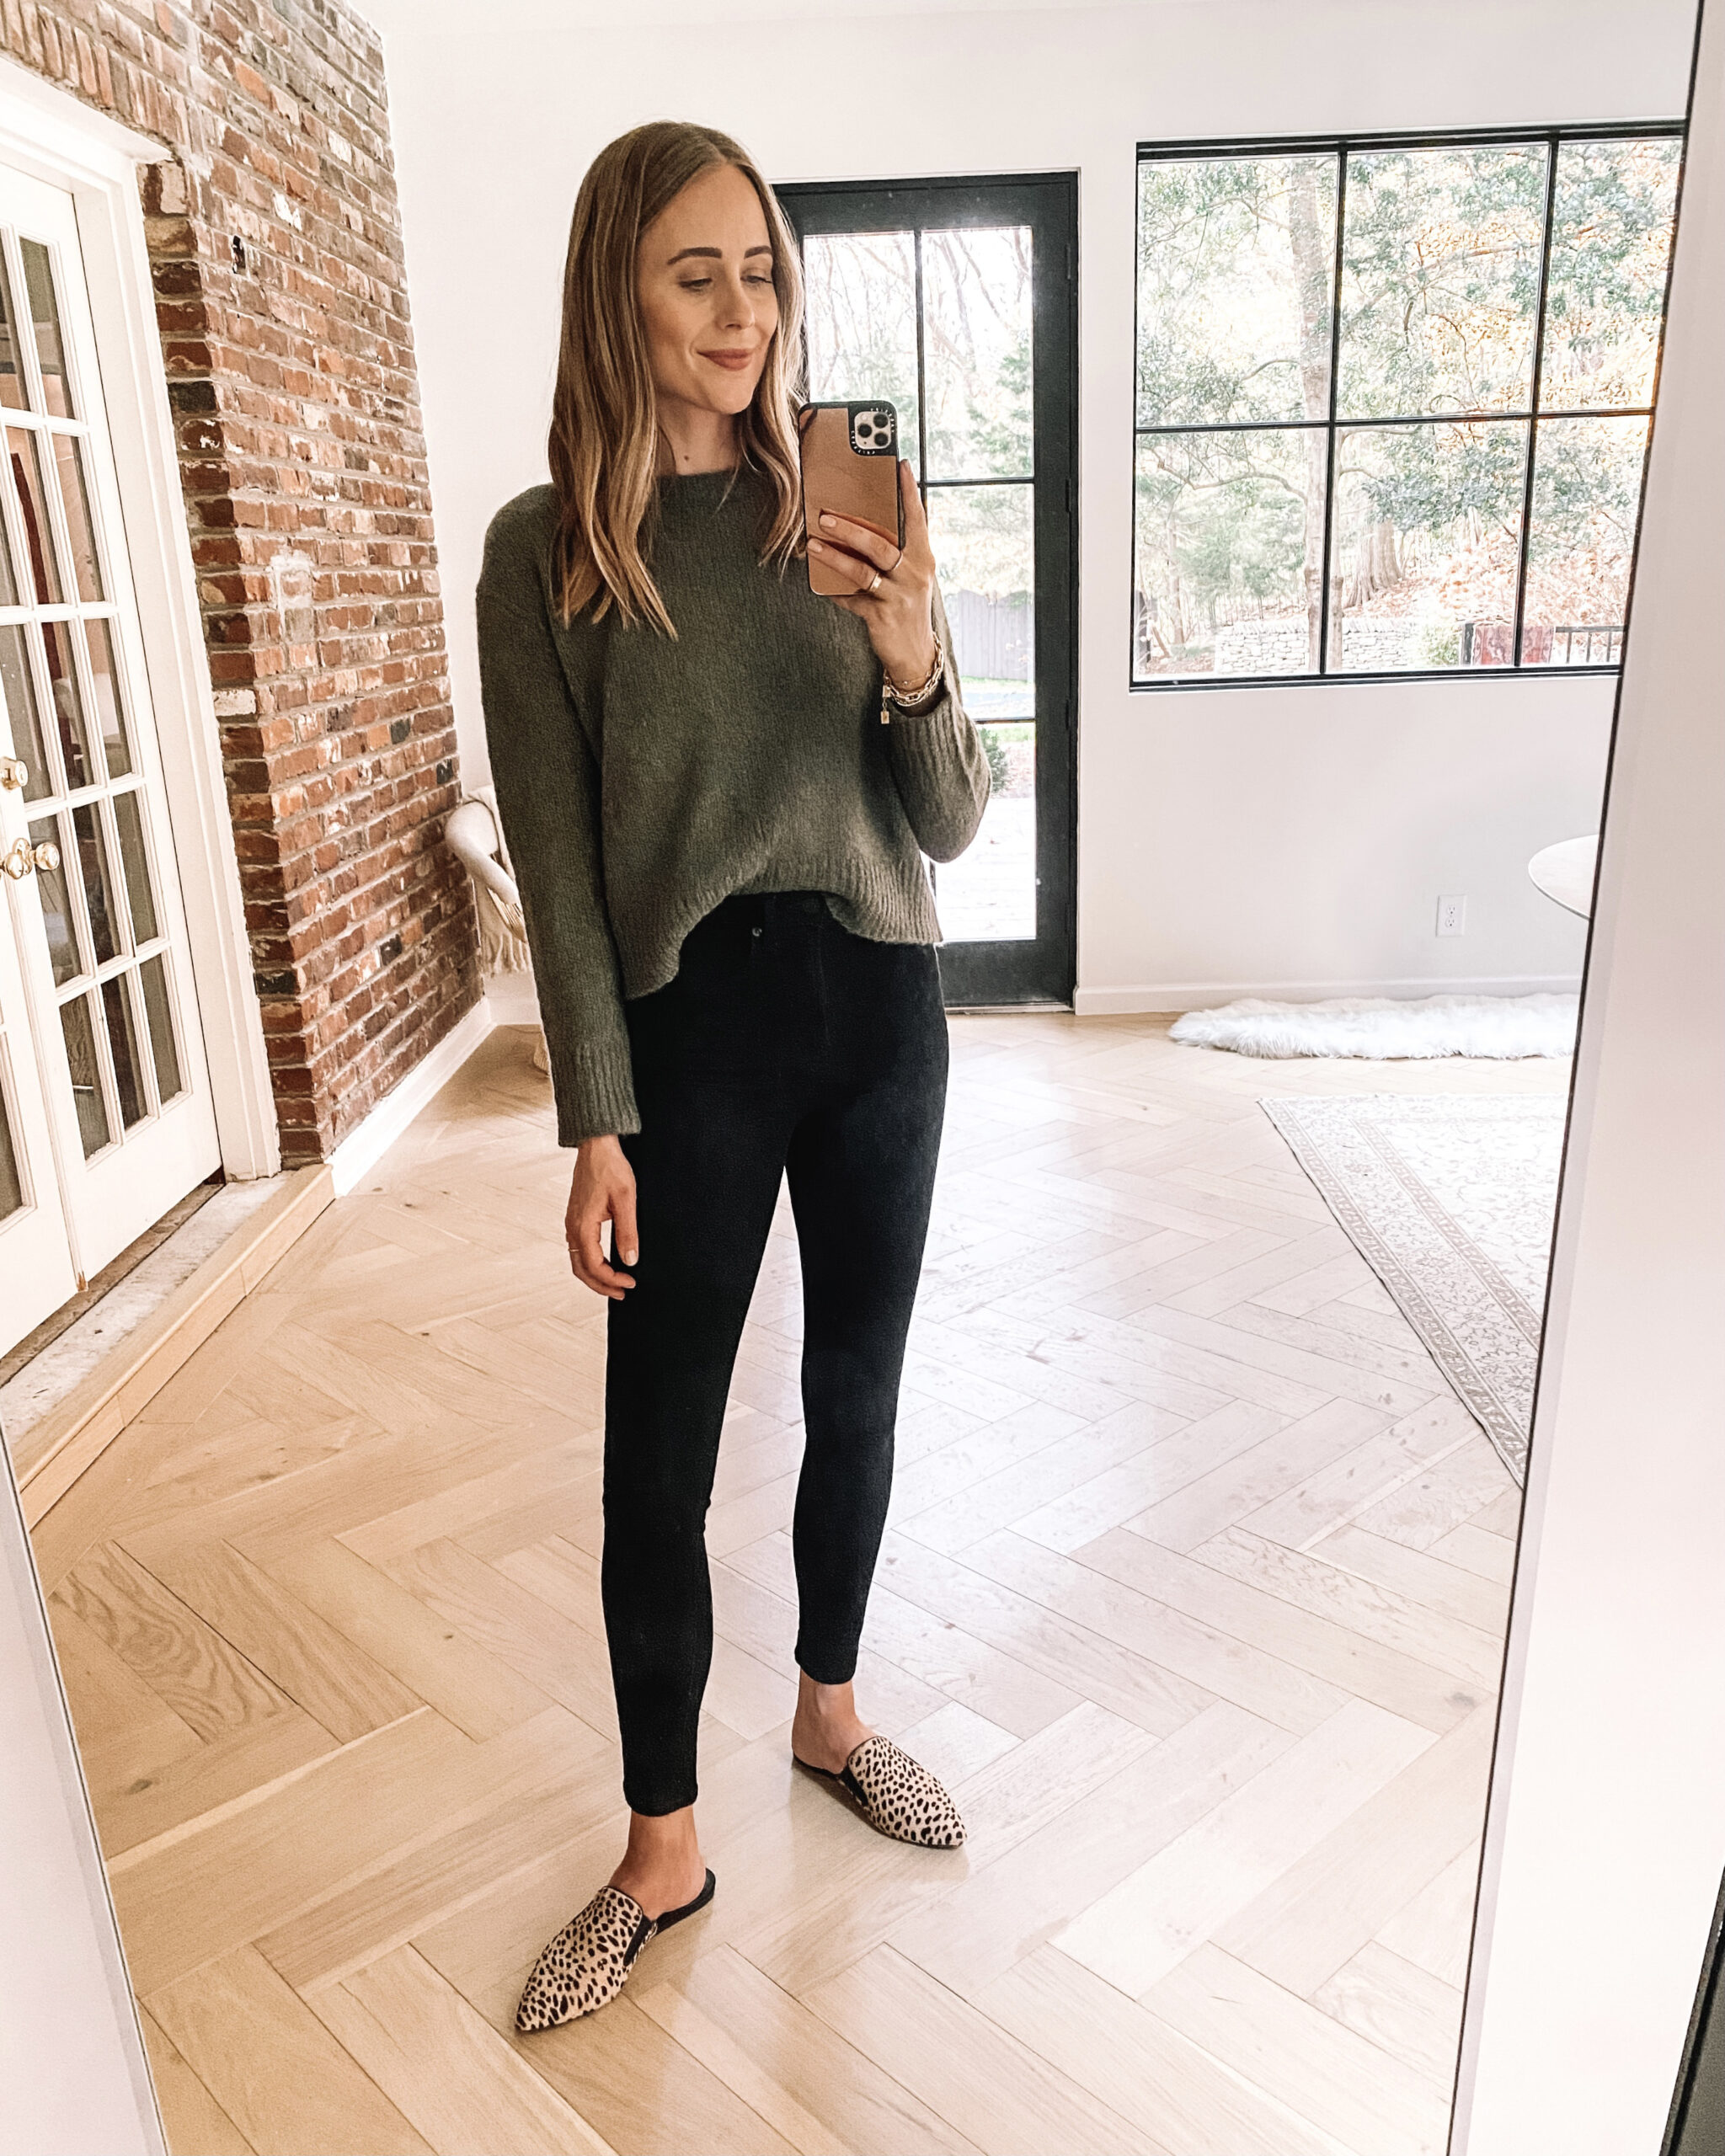 Fashion Jackson Wearing Green Jenni Kayne Atlas Sweater Black Skinny Jeans Leopard Mules